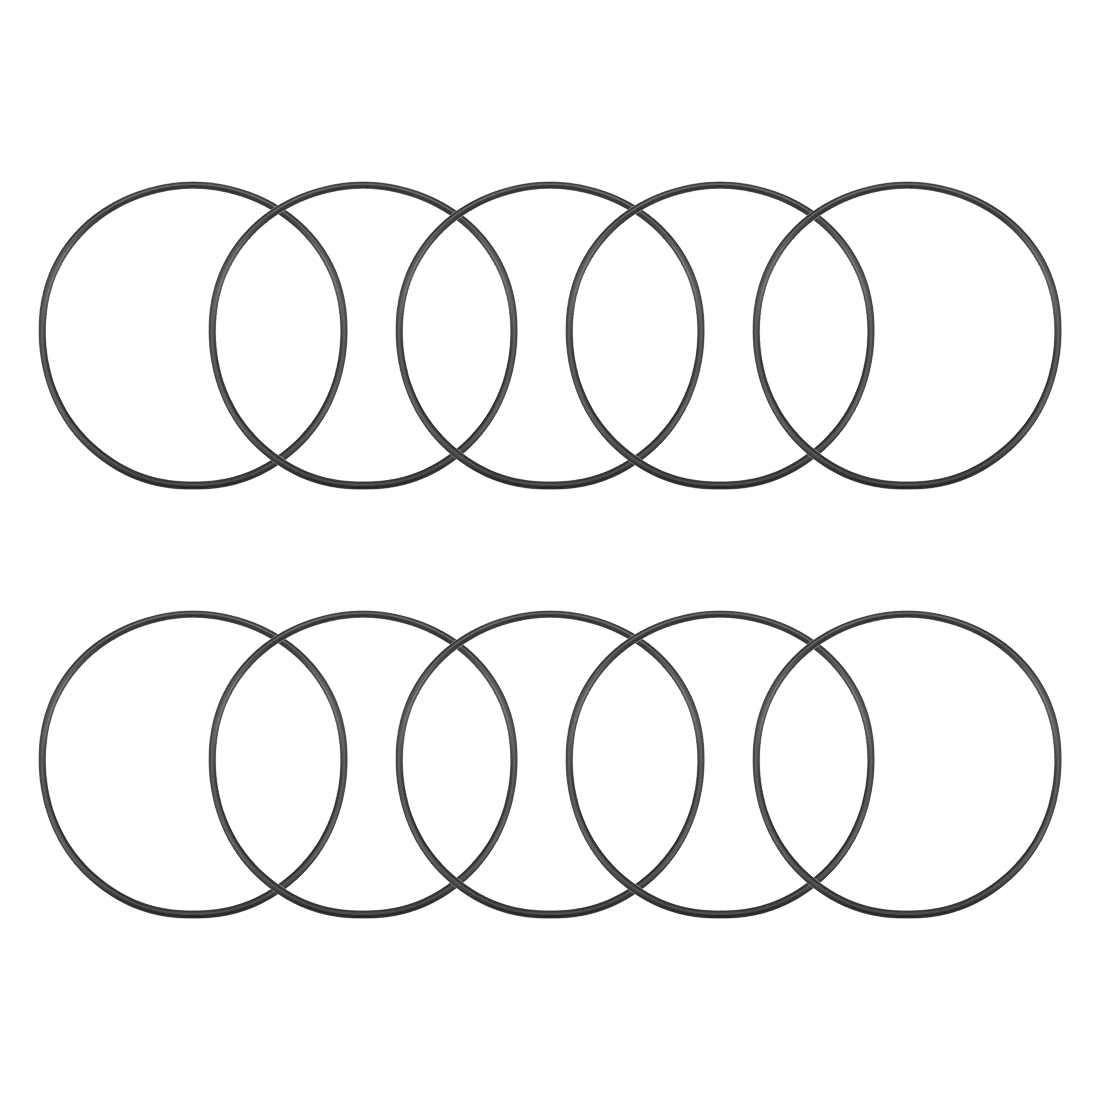 O-Rings Nitrile Rubber 92.5mm x 97.8mm x 2.65mm Round Seal Gasket 10 Pcs